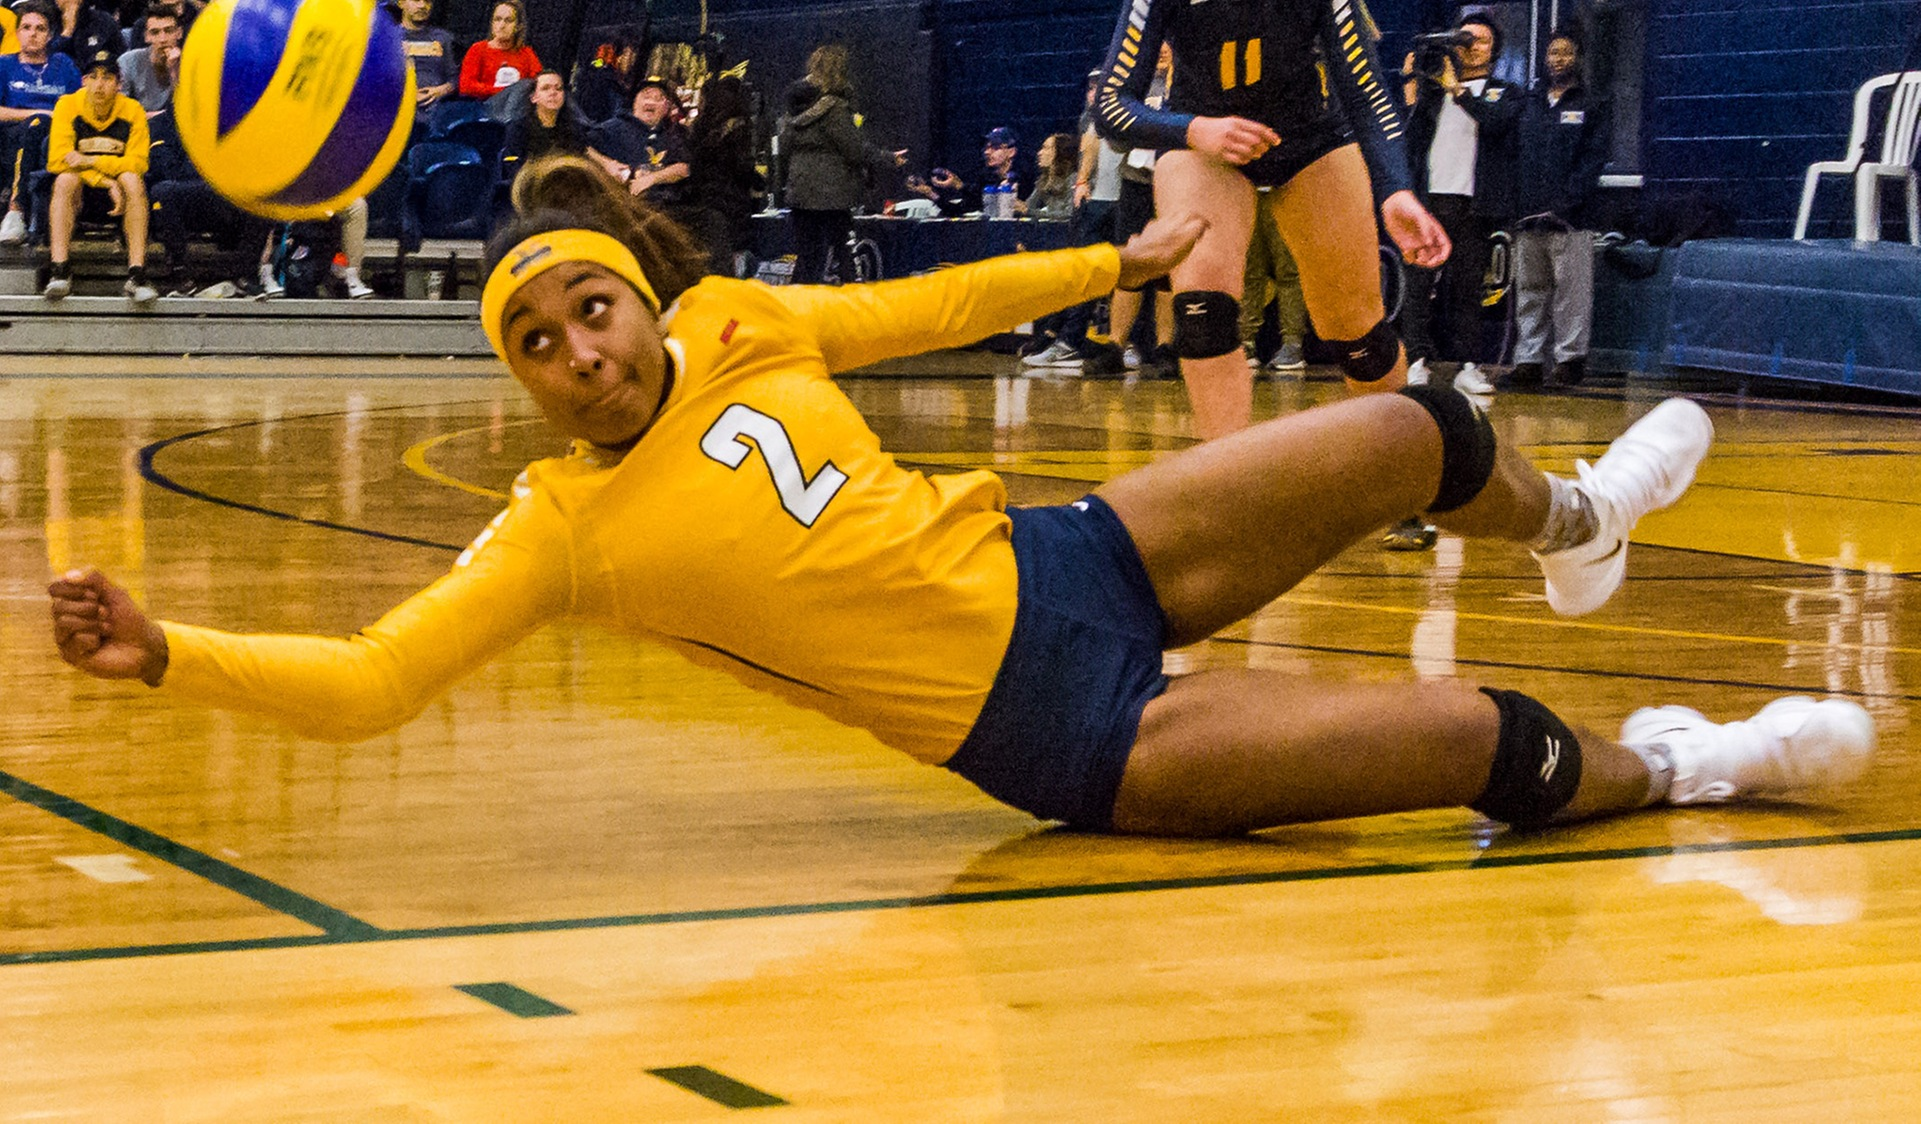 Humber women's volleyball player dives for the ball.